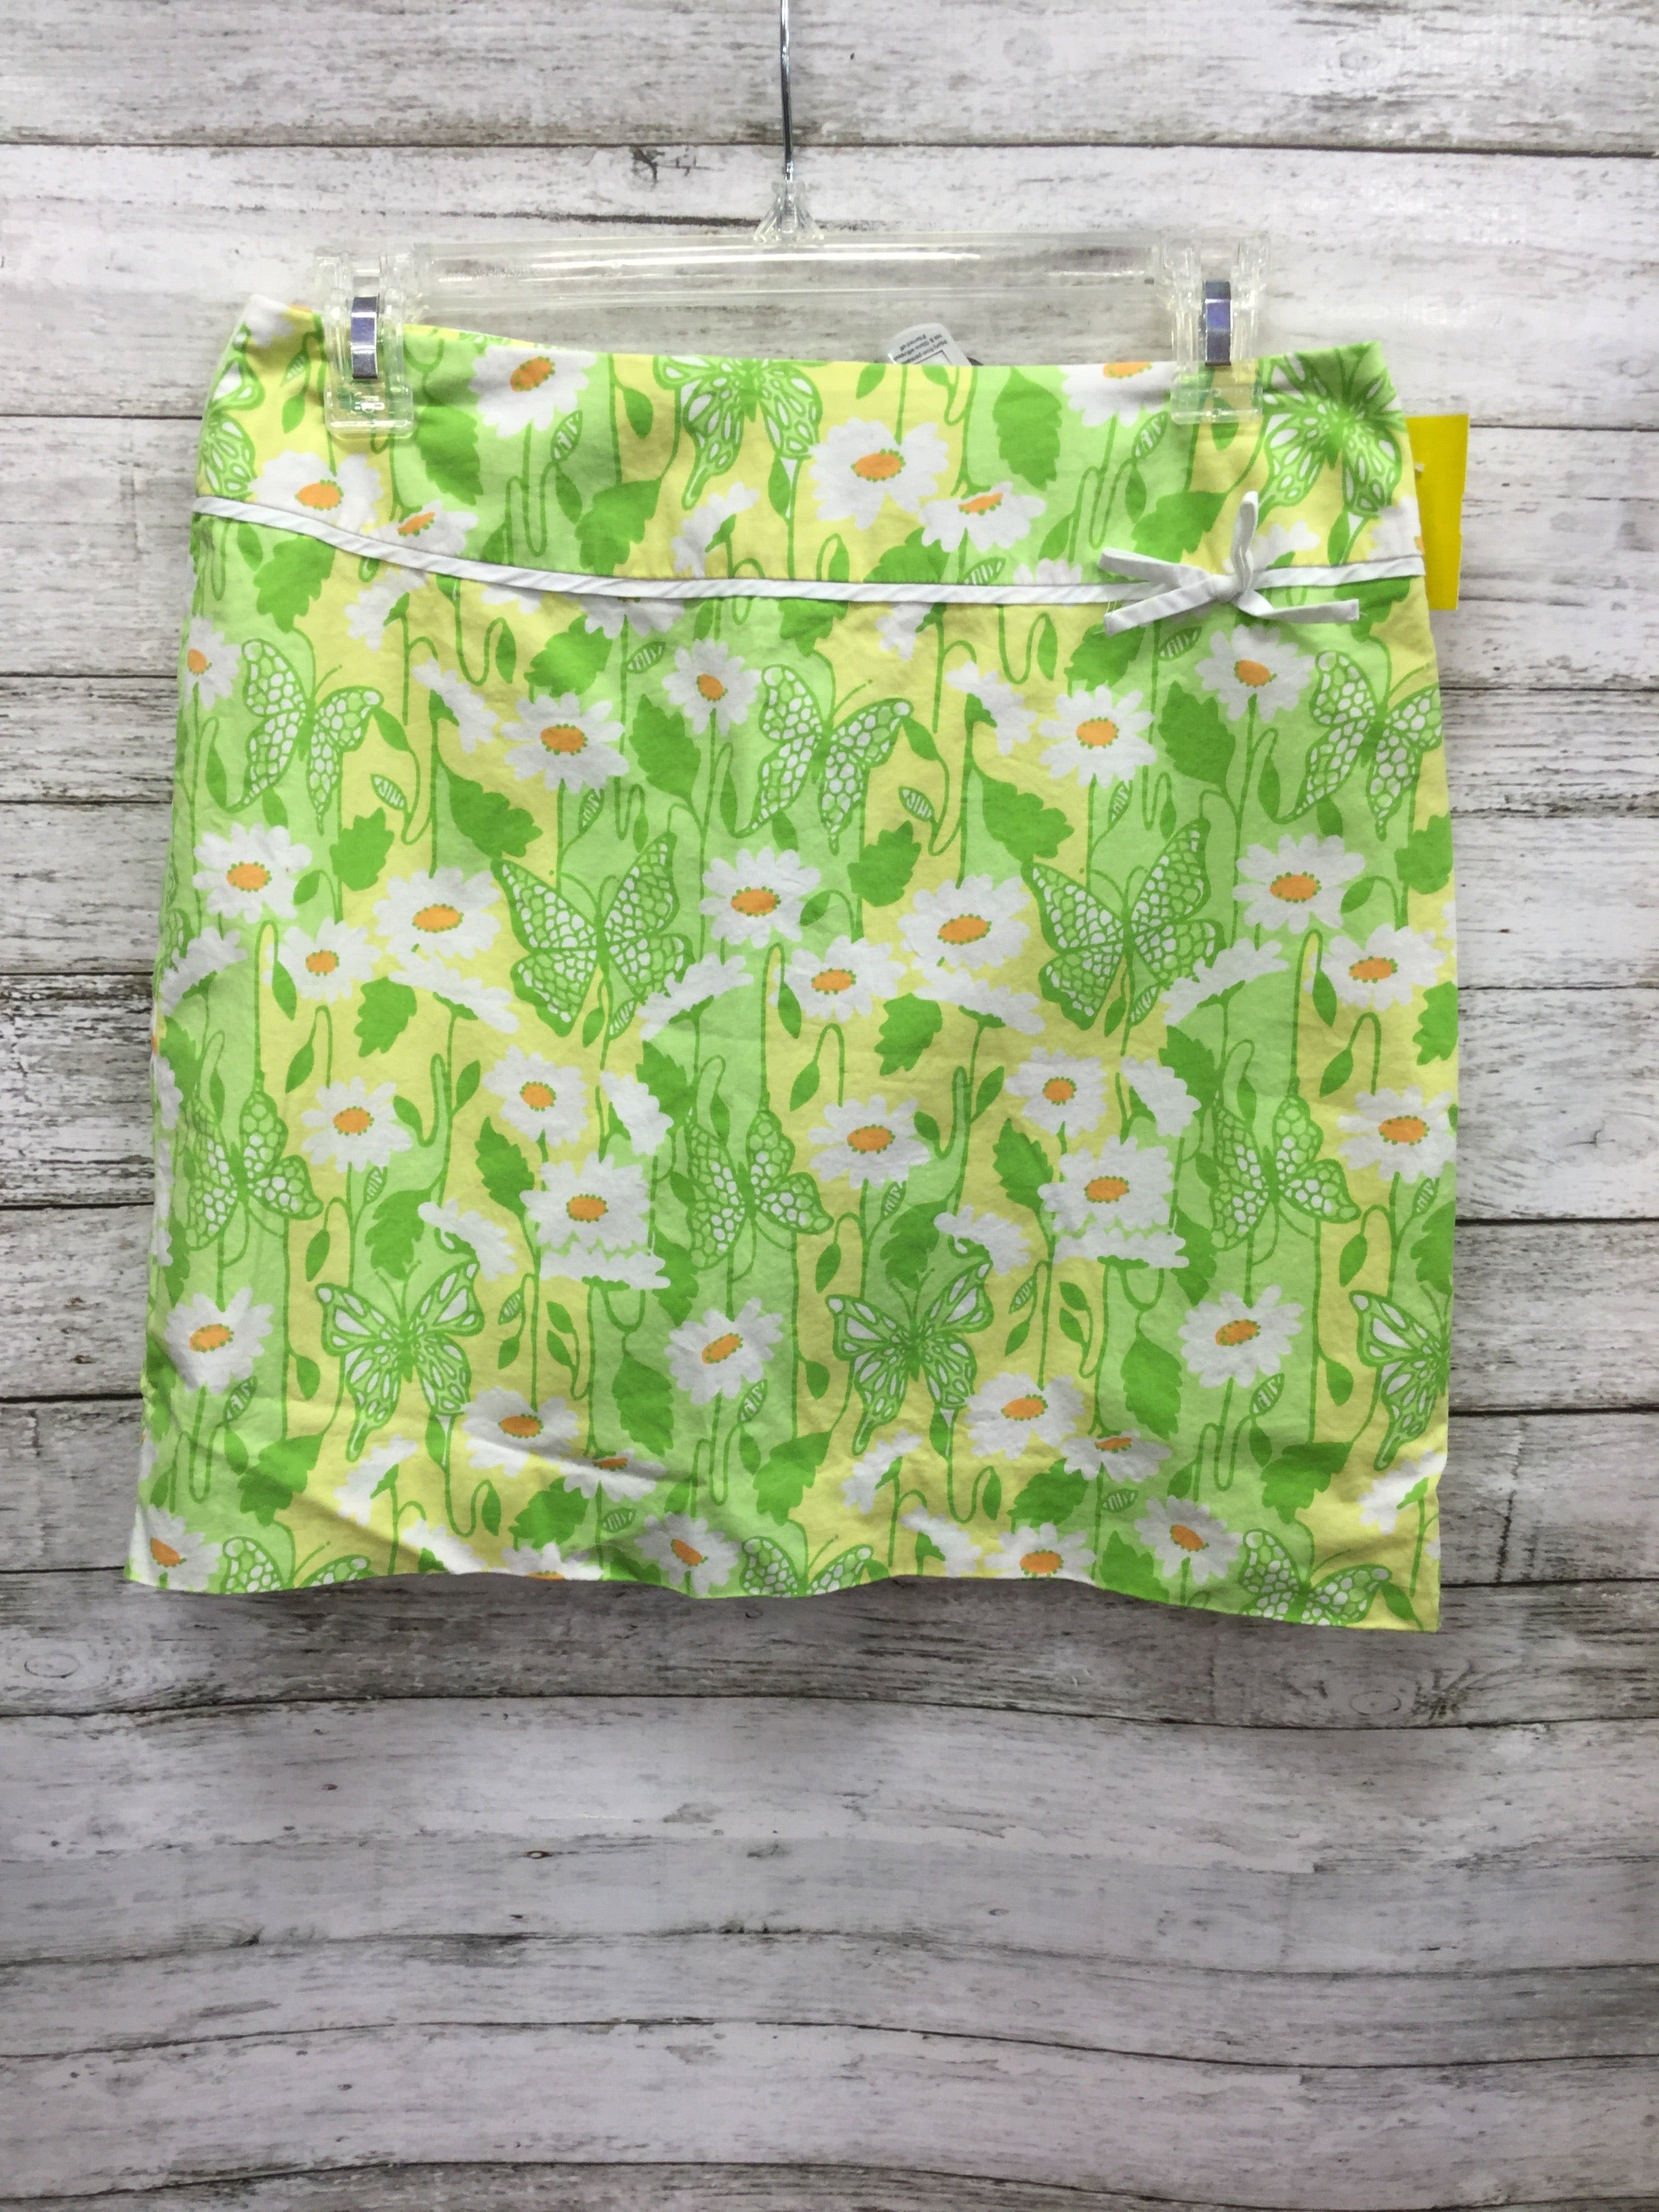 Primary Photo - BRAND: LILLY PULITZER , STYLE: SKIRT , COLOR: GREEN , SIZE: 2 , SKU: 127-3371-45721, , LILLY PULITZER SKIRT IN THE CUTEST PASTEL GREEN, YELLOW, ORANGE AND WHITE PRINT WITH FLOWERS AND BUTTERFLIES! FEATURES WHITE TRIM AND BOW DETAIL.